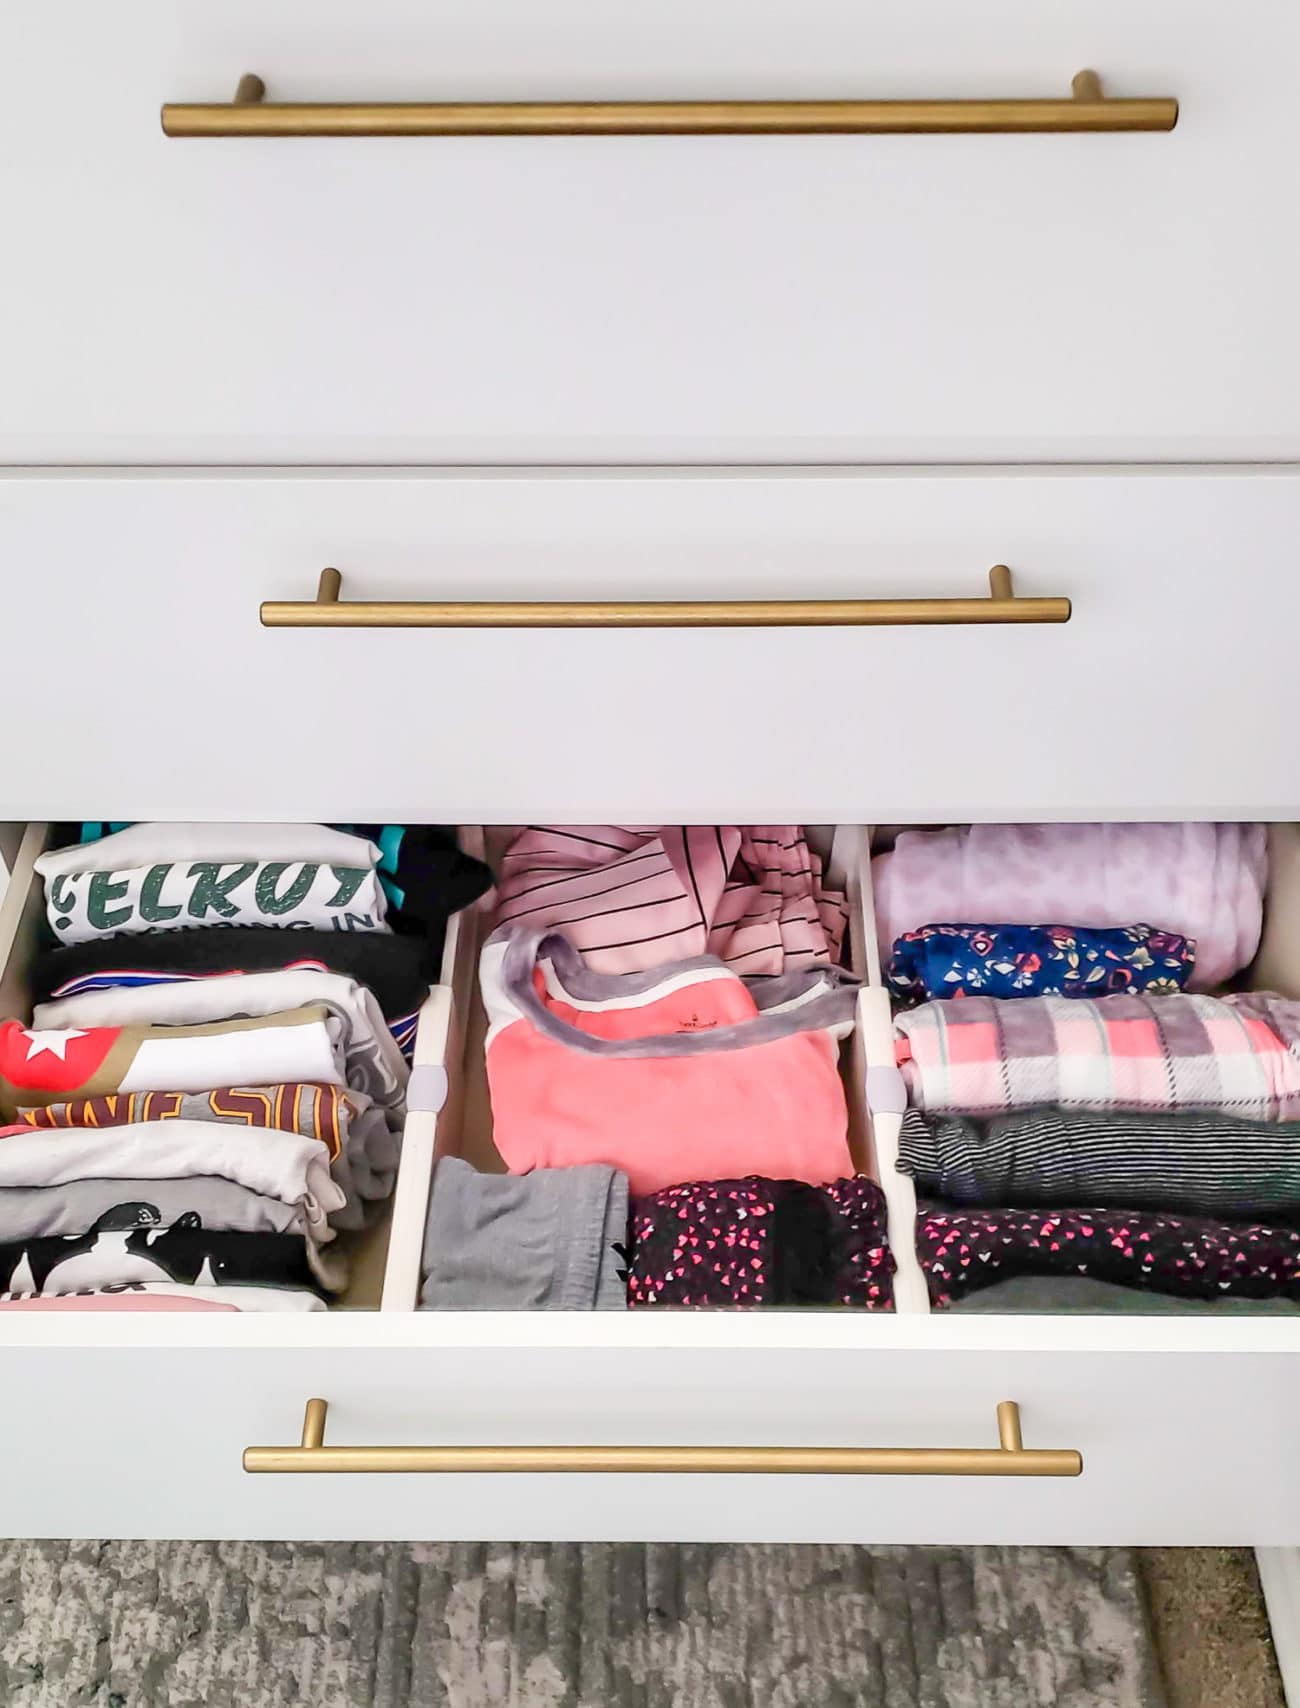 Pajamas organized in dresser drawer